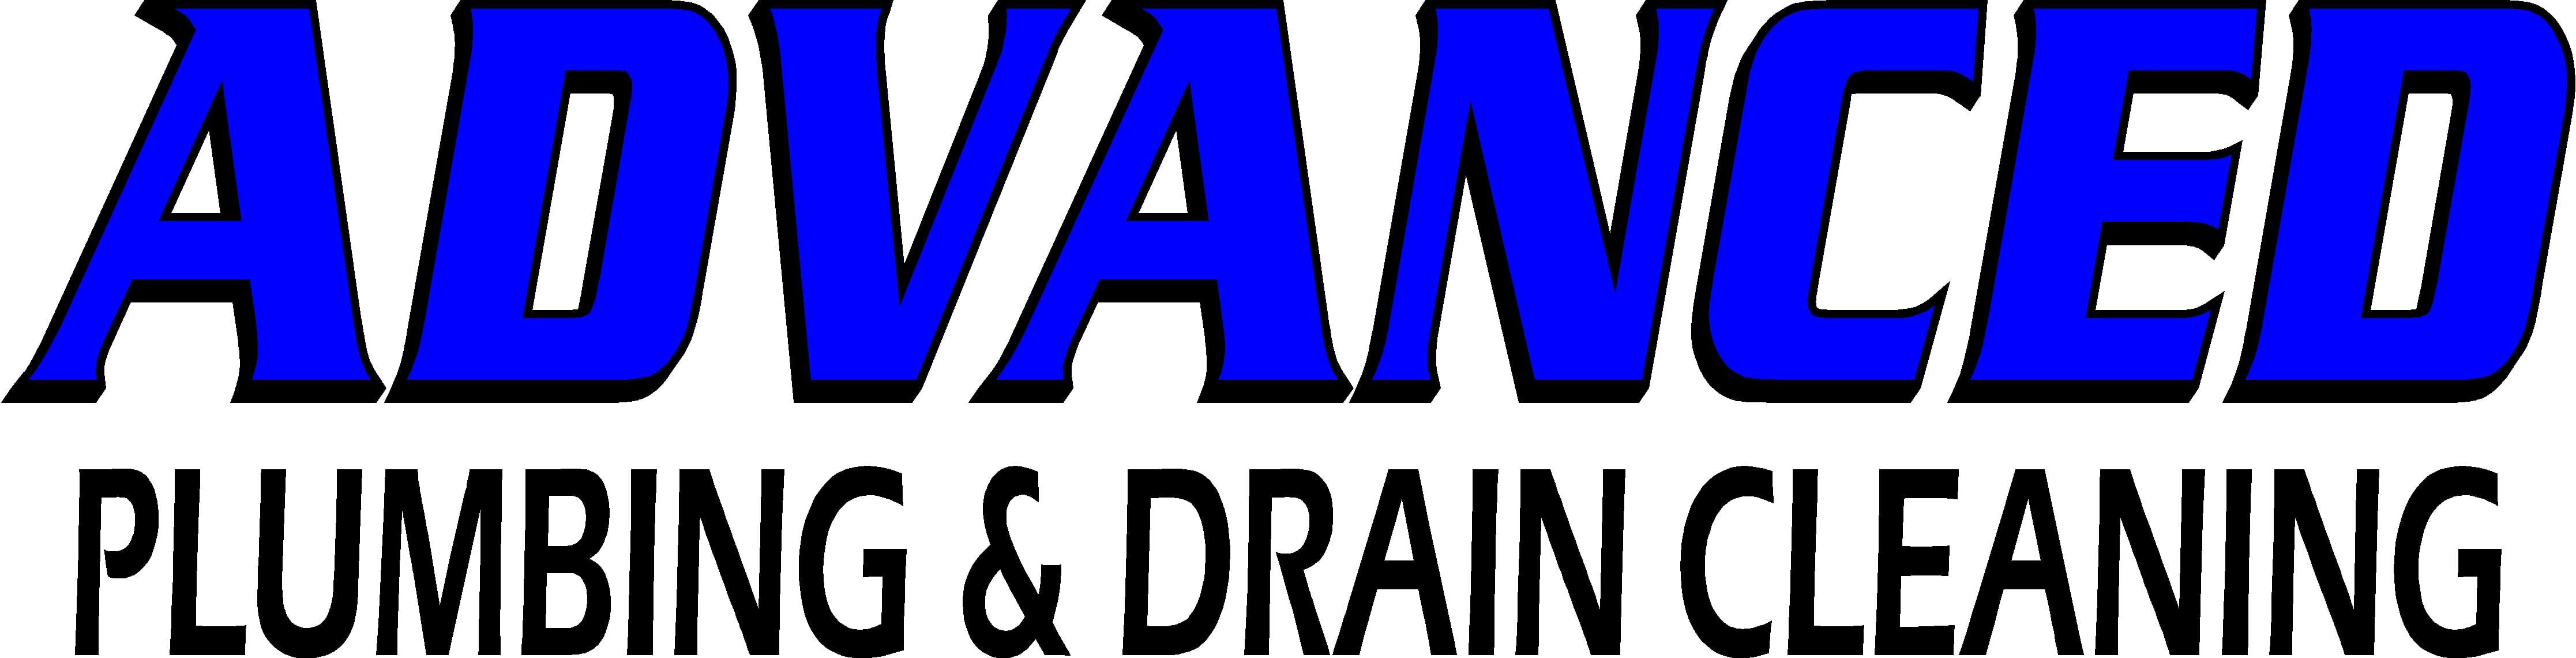 reclaim water advanced filtration reclaimsystem plumbing island pumpsdouble systems rhode